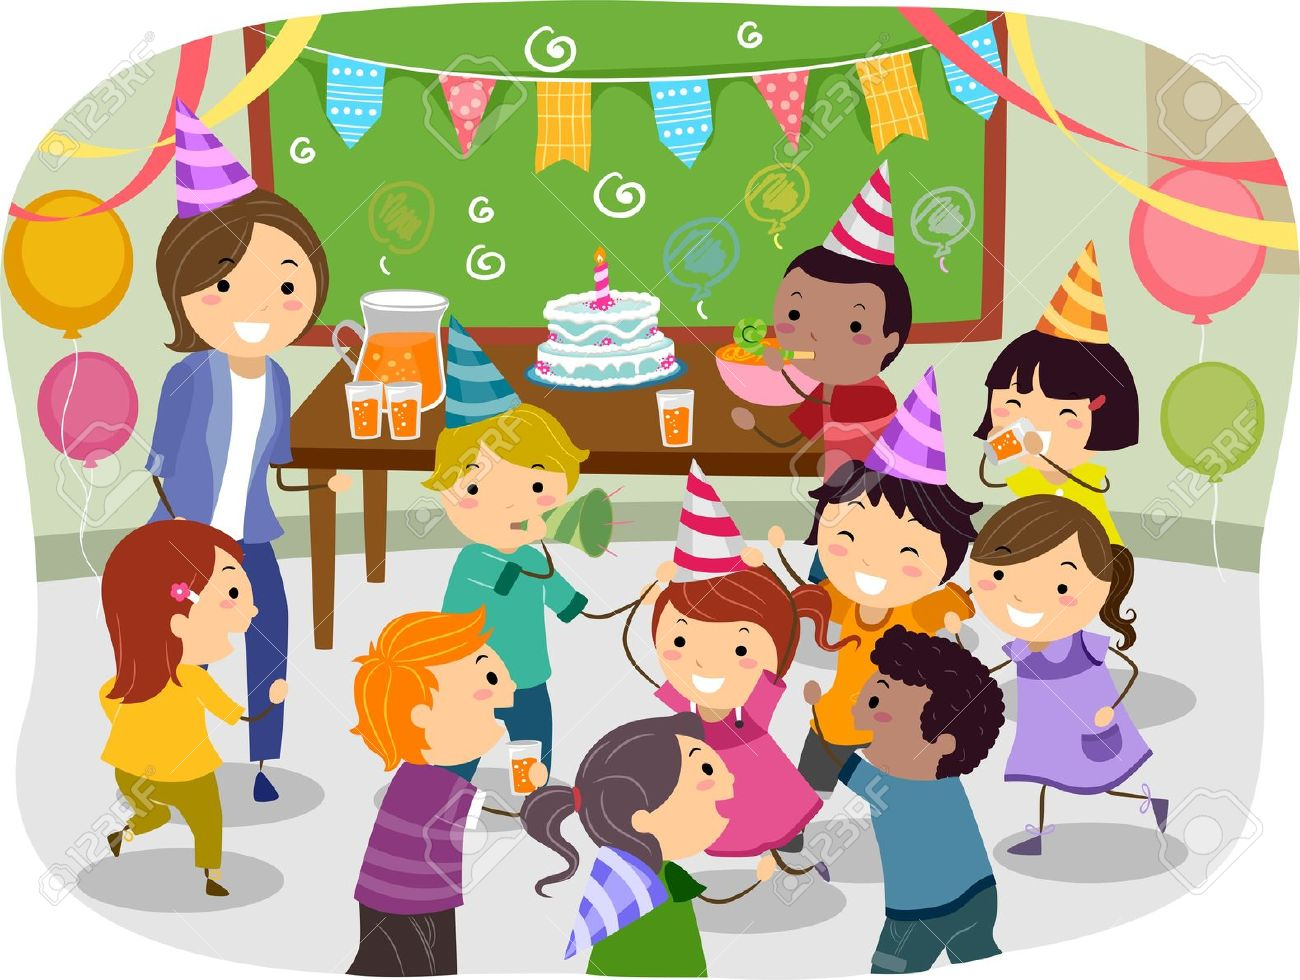 Illustration Of Stickman Kids Having A Birthday Party At School Stock Photo Picture And Royalty Free Image Image 20780077